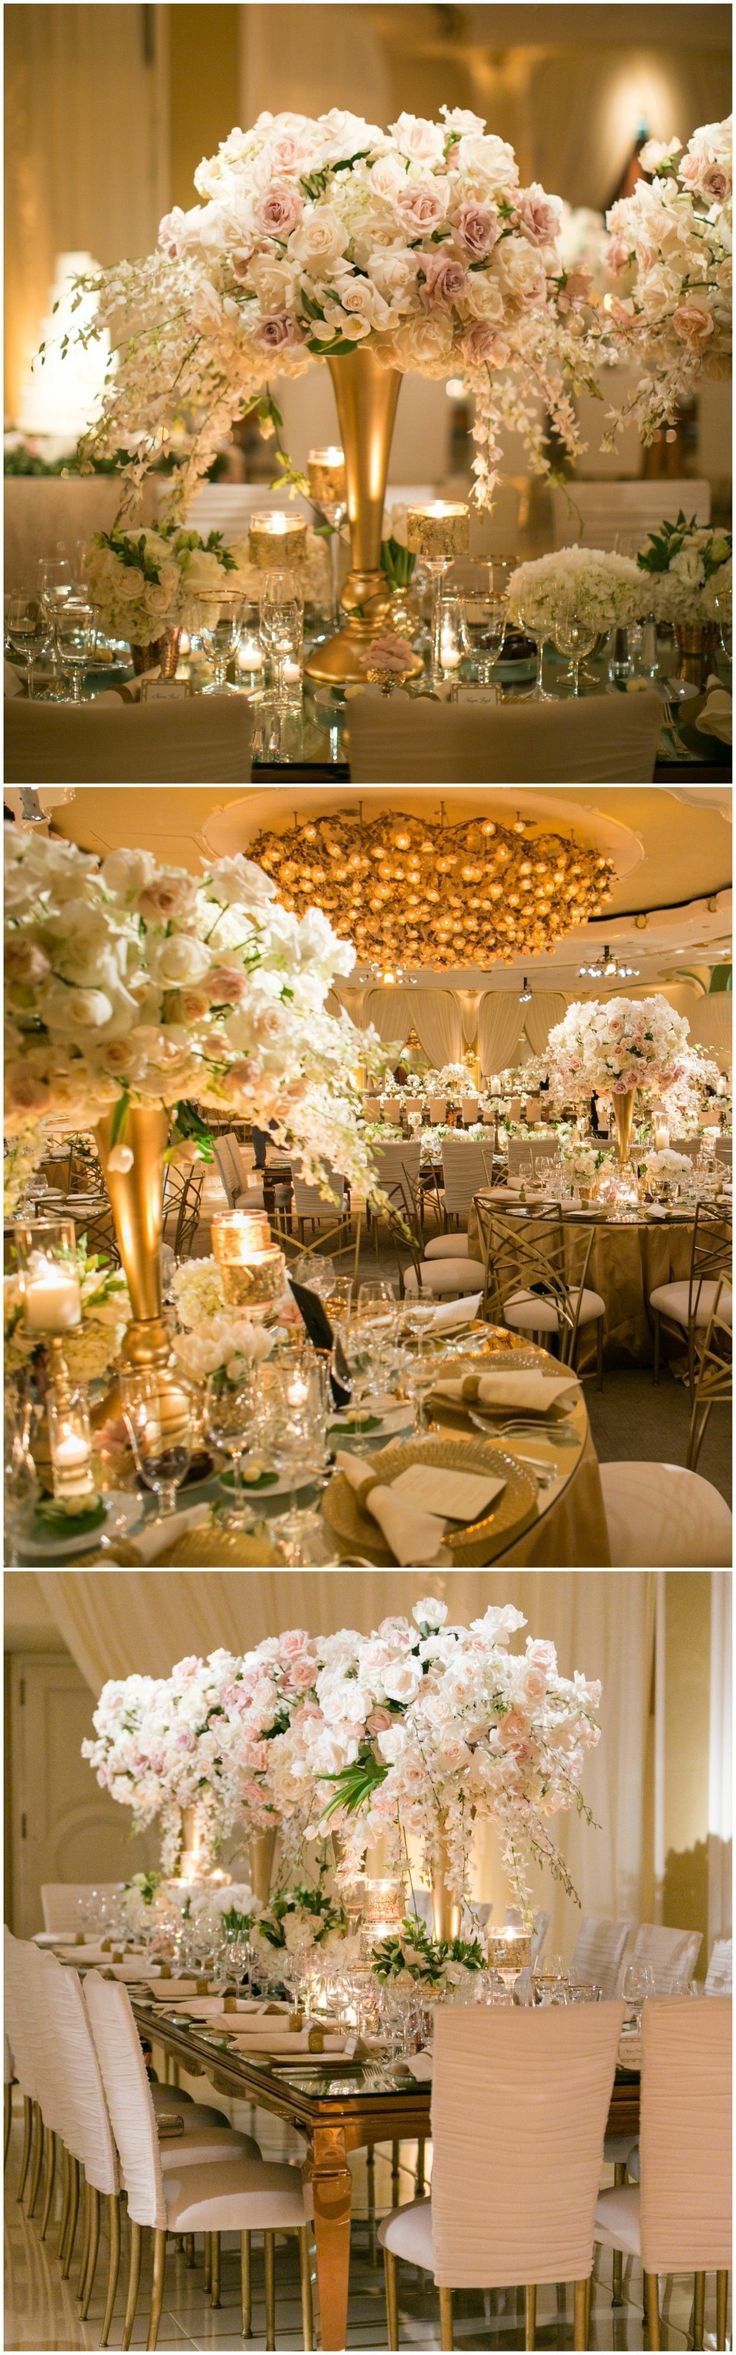 The 25 best gold vase centerpieces ideas on pinterest roses black tie wedding formal indoor wedding reception tall white and pastel pink floral centerpieces reviewsmspy